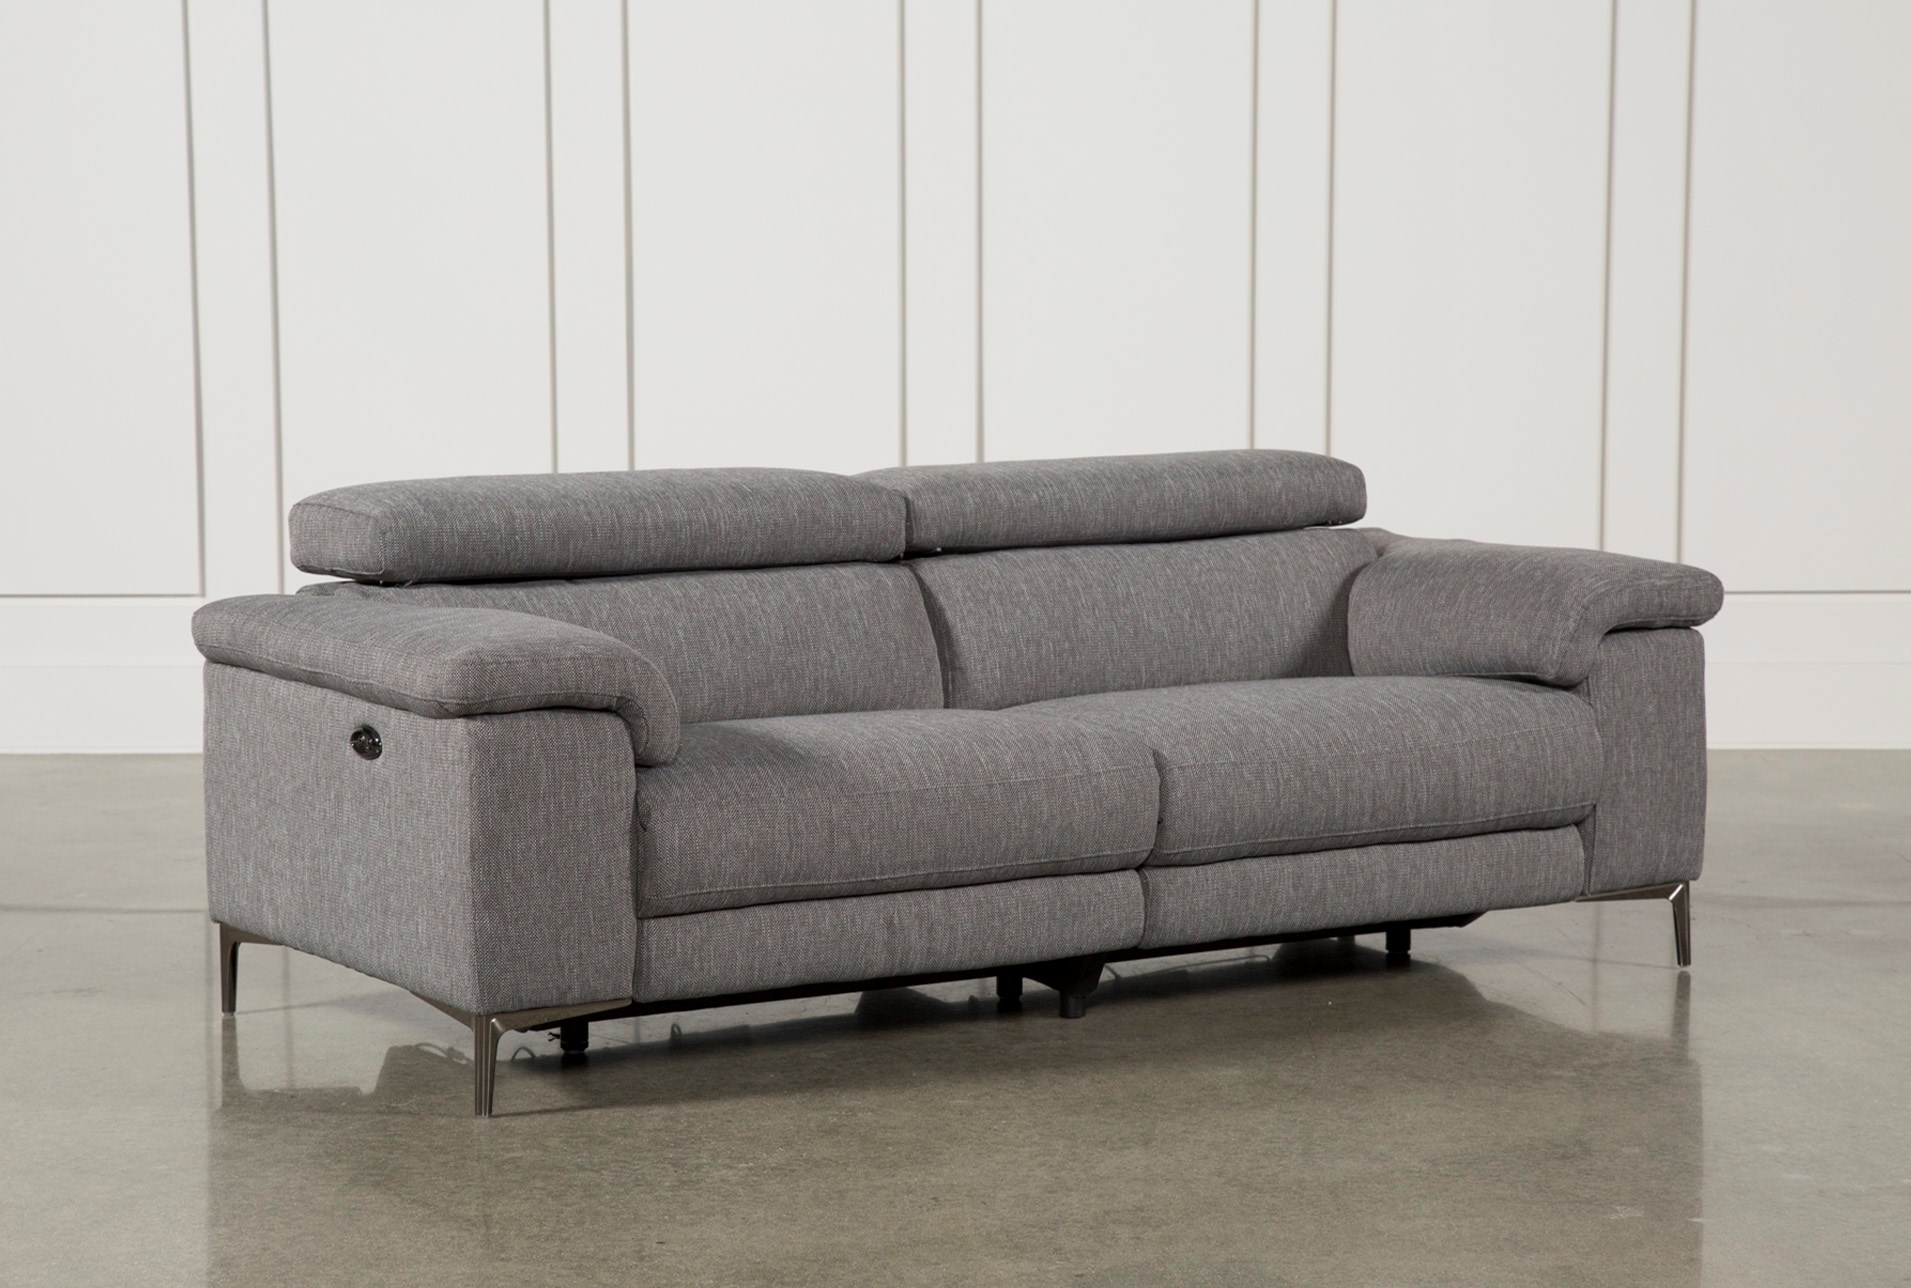 Outstanding Power Sofa Home Decorating Styles Machost Co Dining Chair Design Ideas Machostcouk